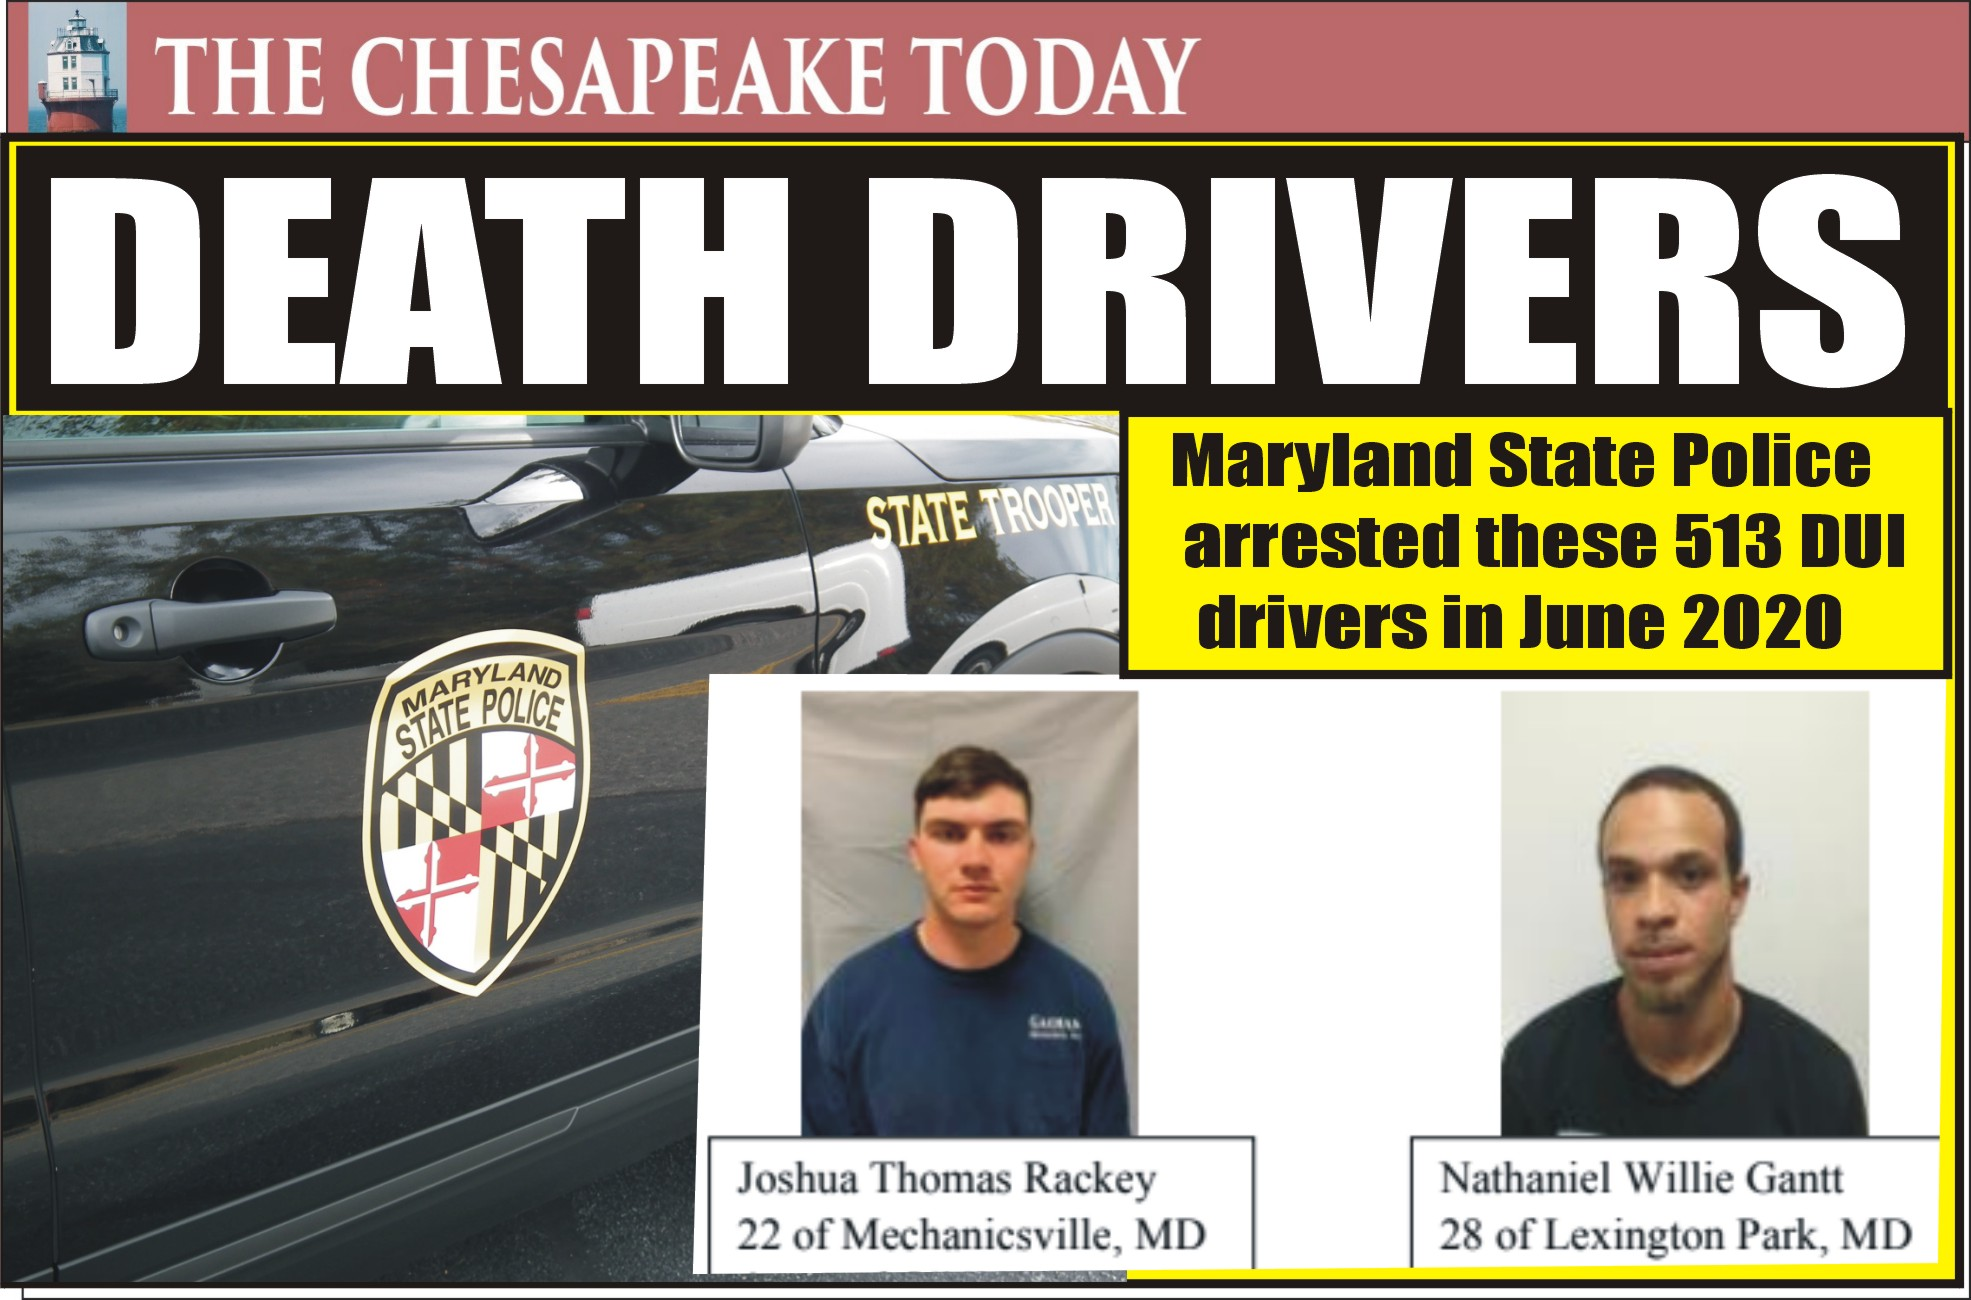 DWI HIT PARADE: Maryland State Police removed 513 alleged impaired drivers from highways in June of 2020; they didn't mind taking a life while they took their party on the road.